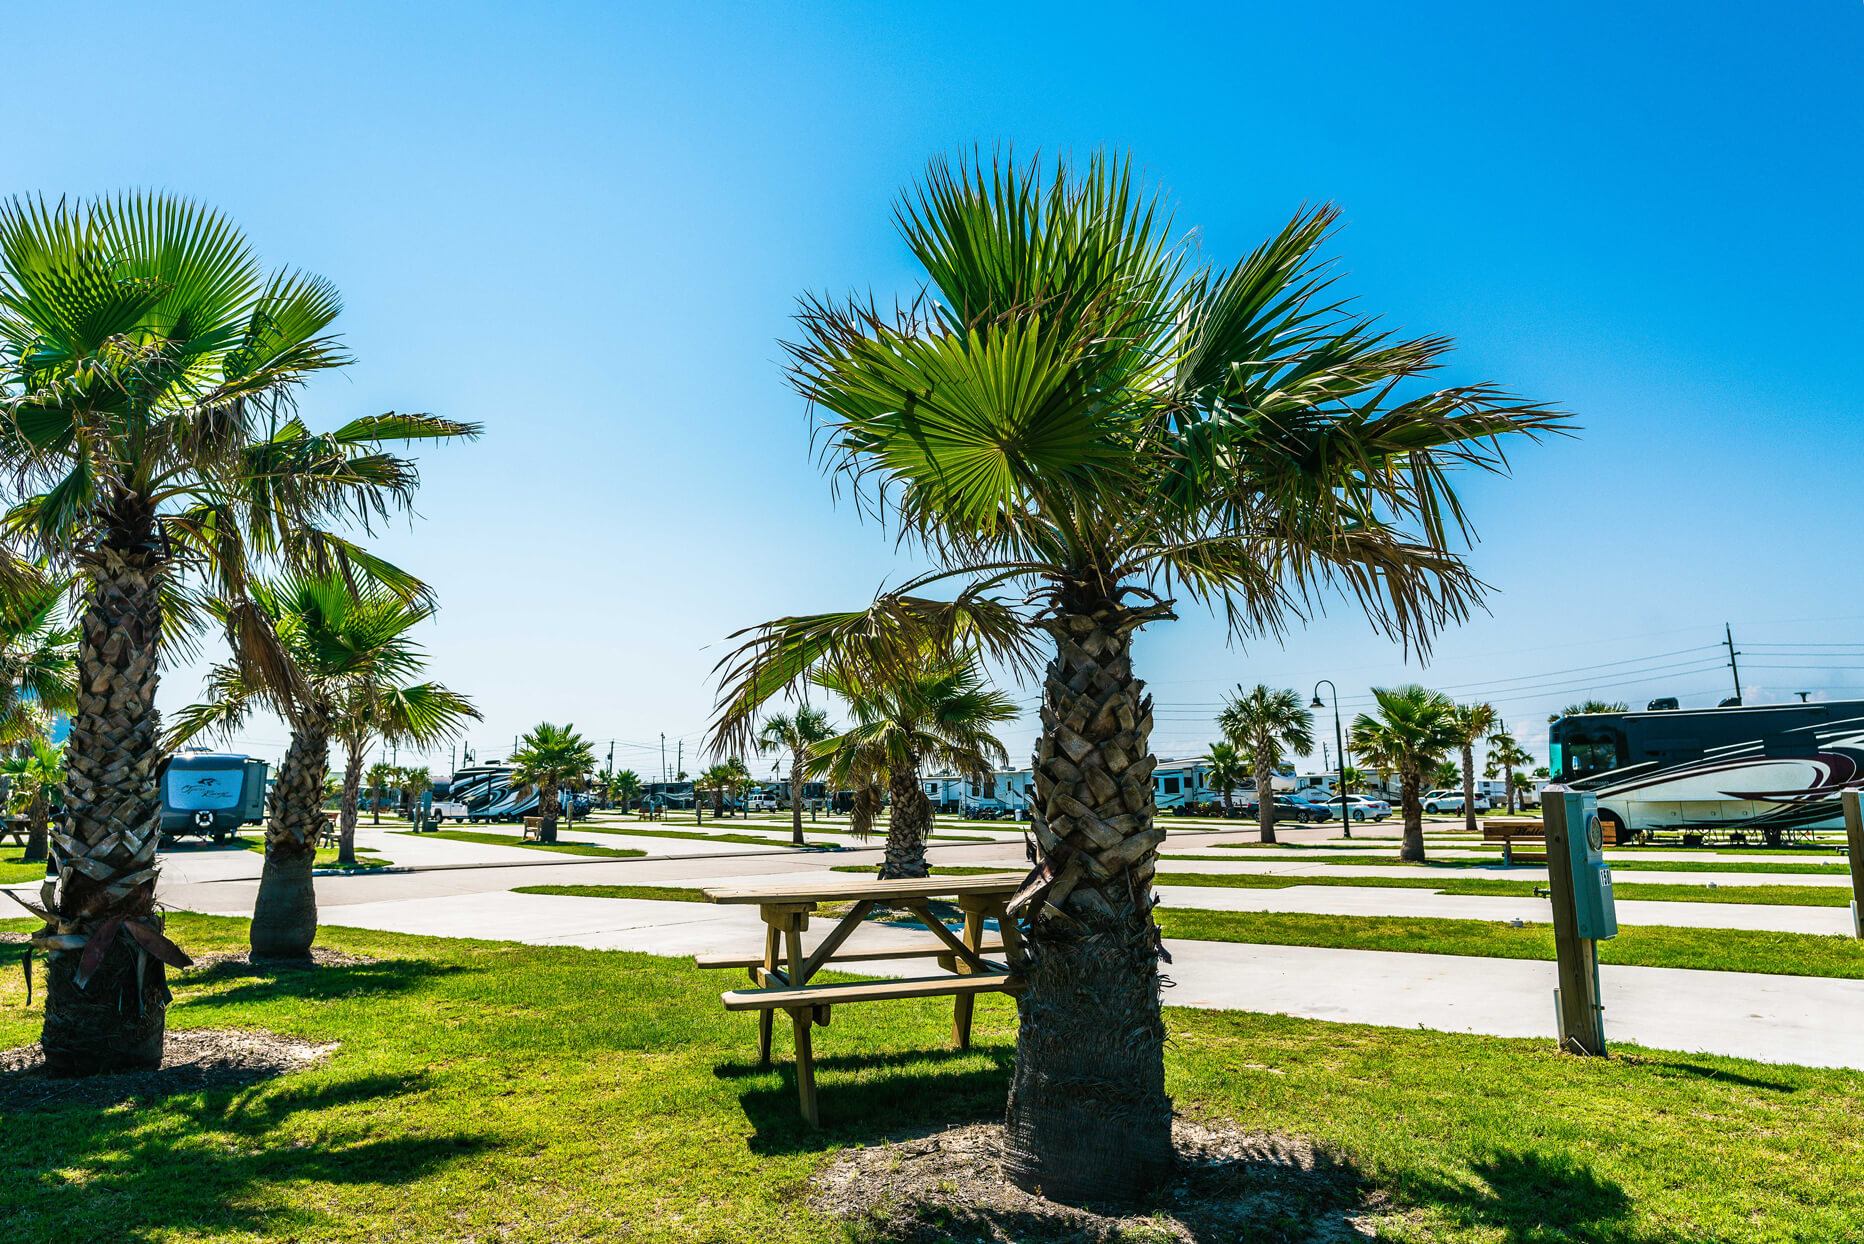 Open Galveston RV campground site at Stella Mare RV Resort